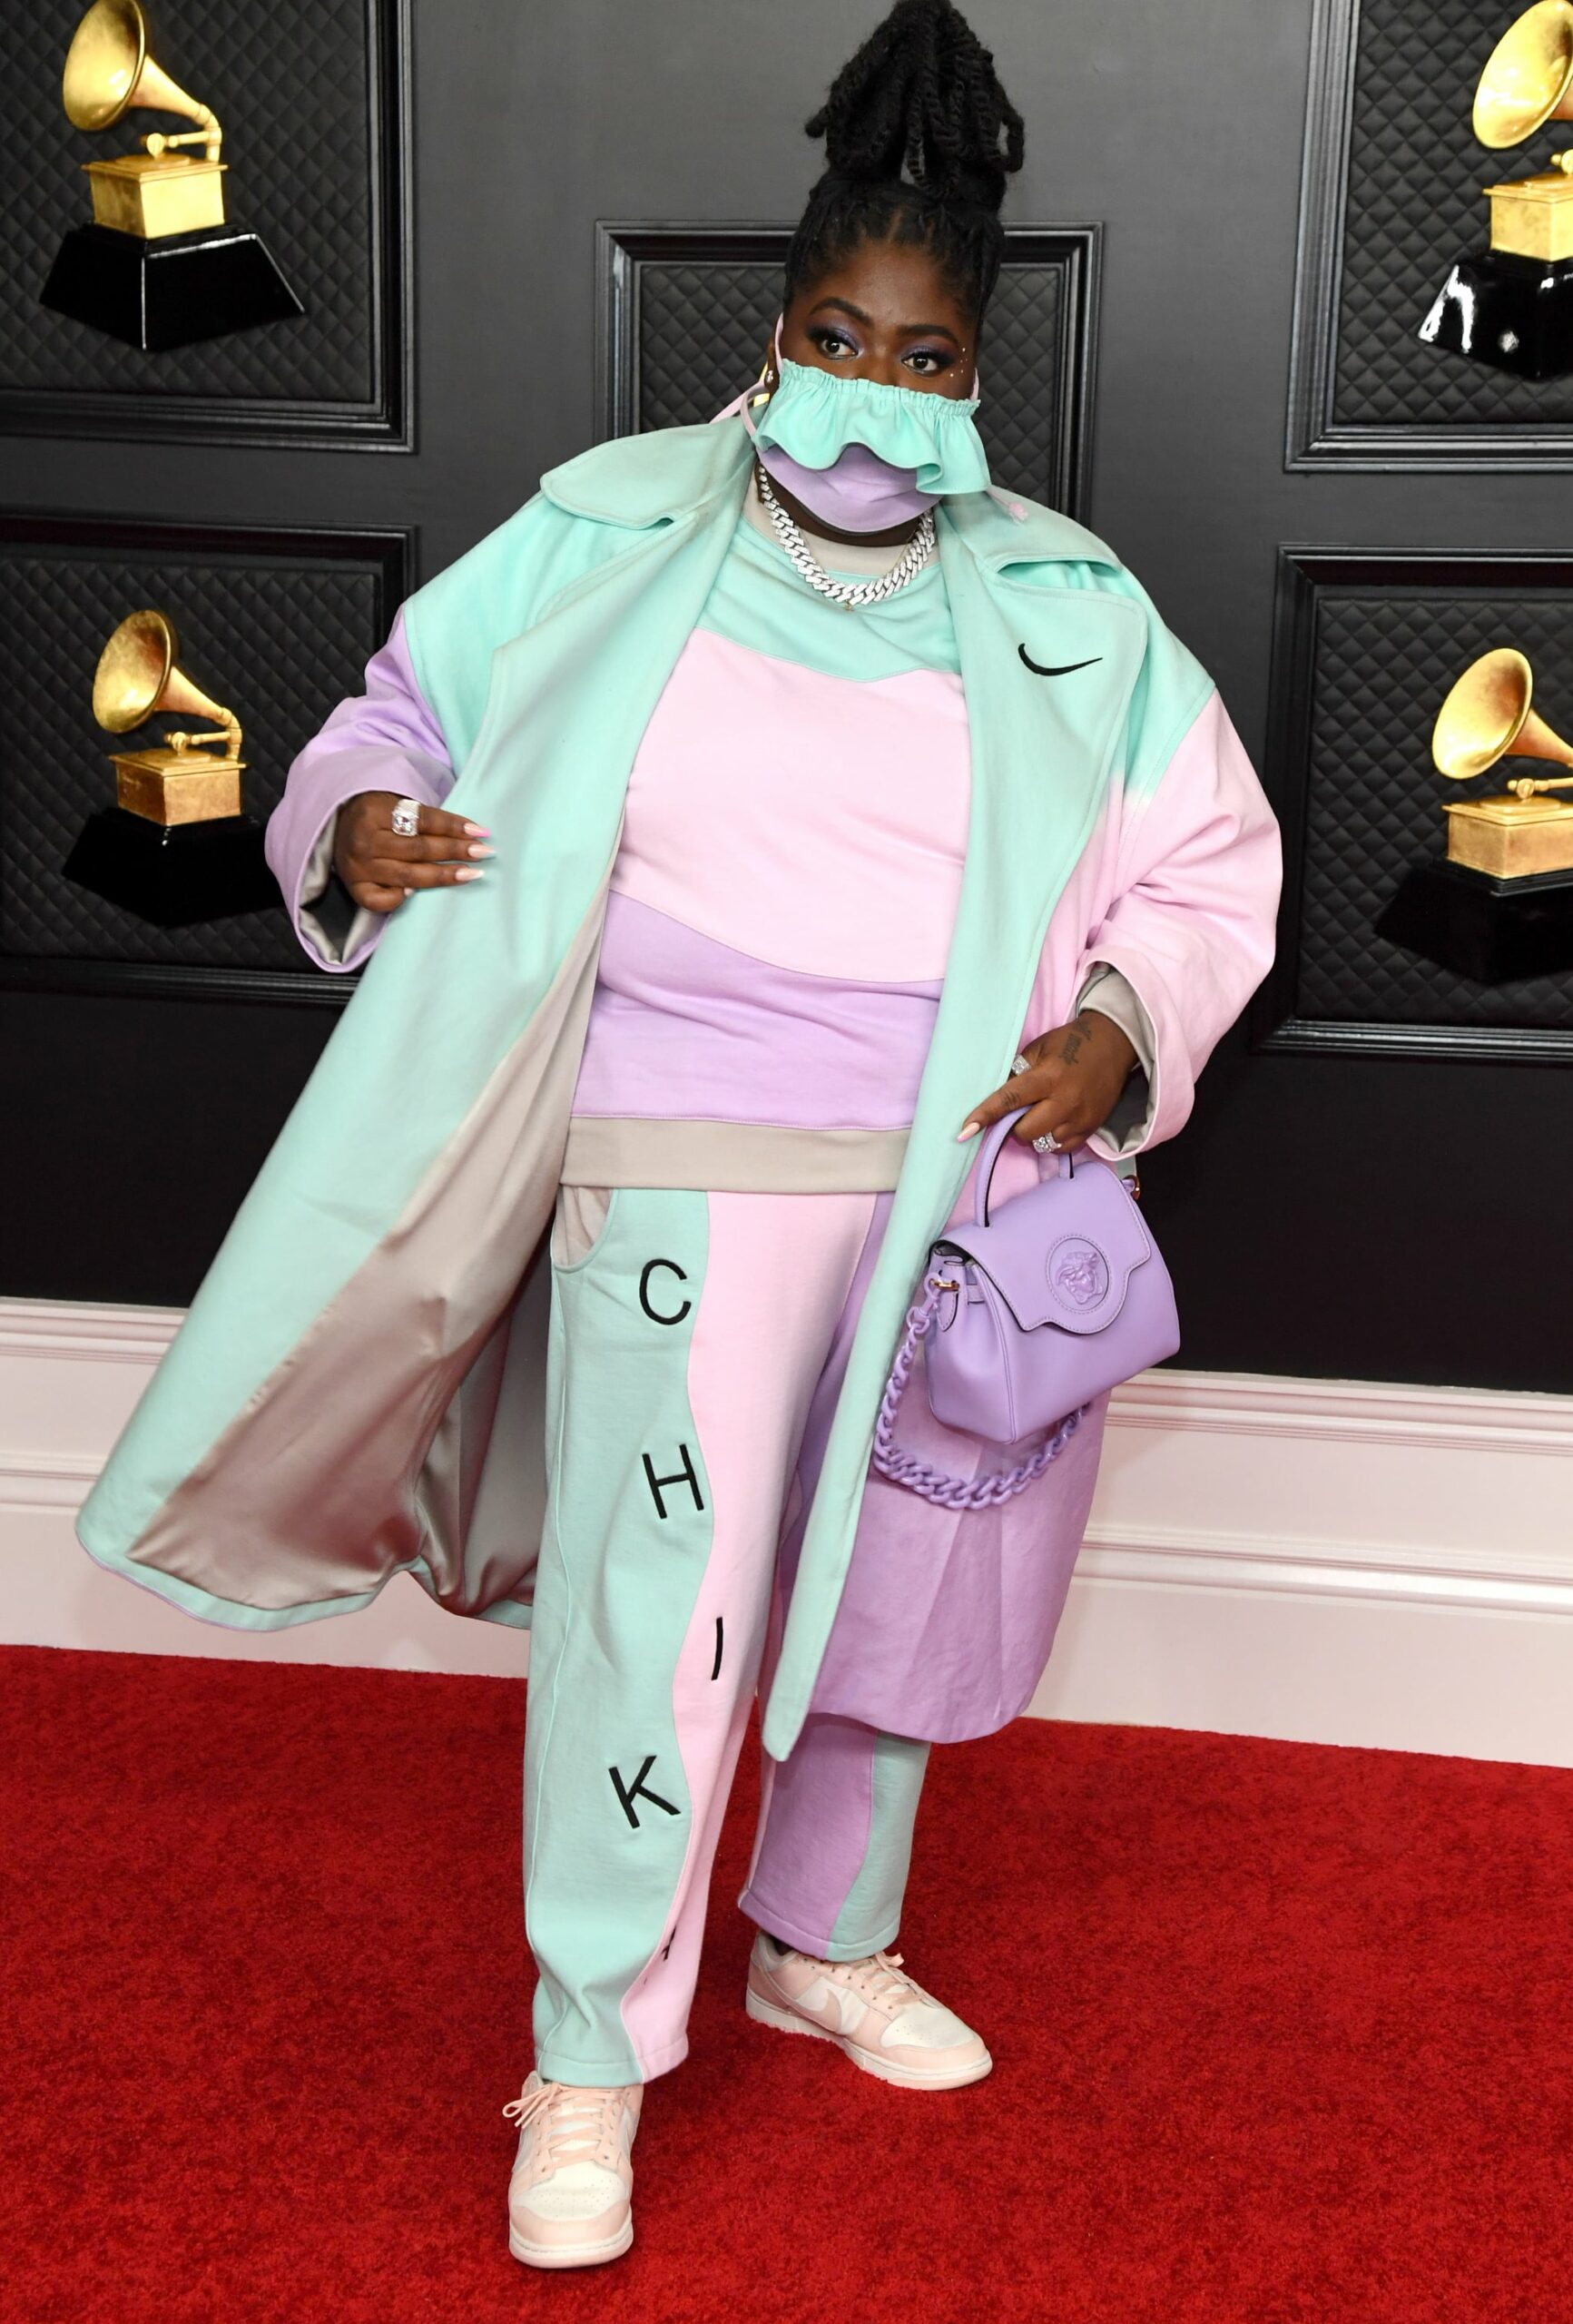 Chika posing on the red carpet at the Grammys 2021.